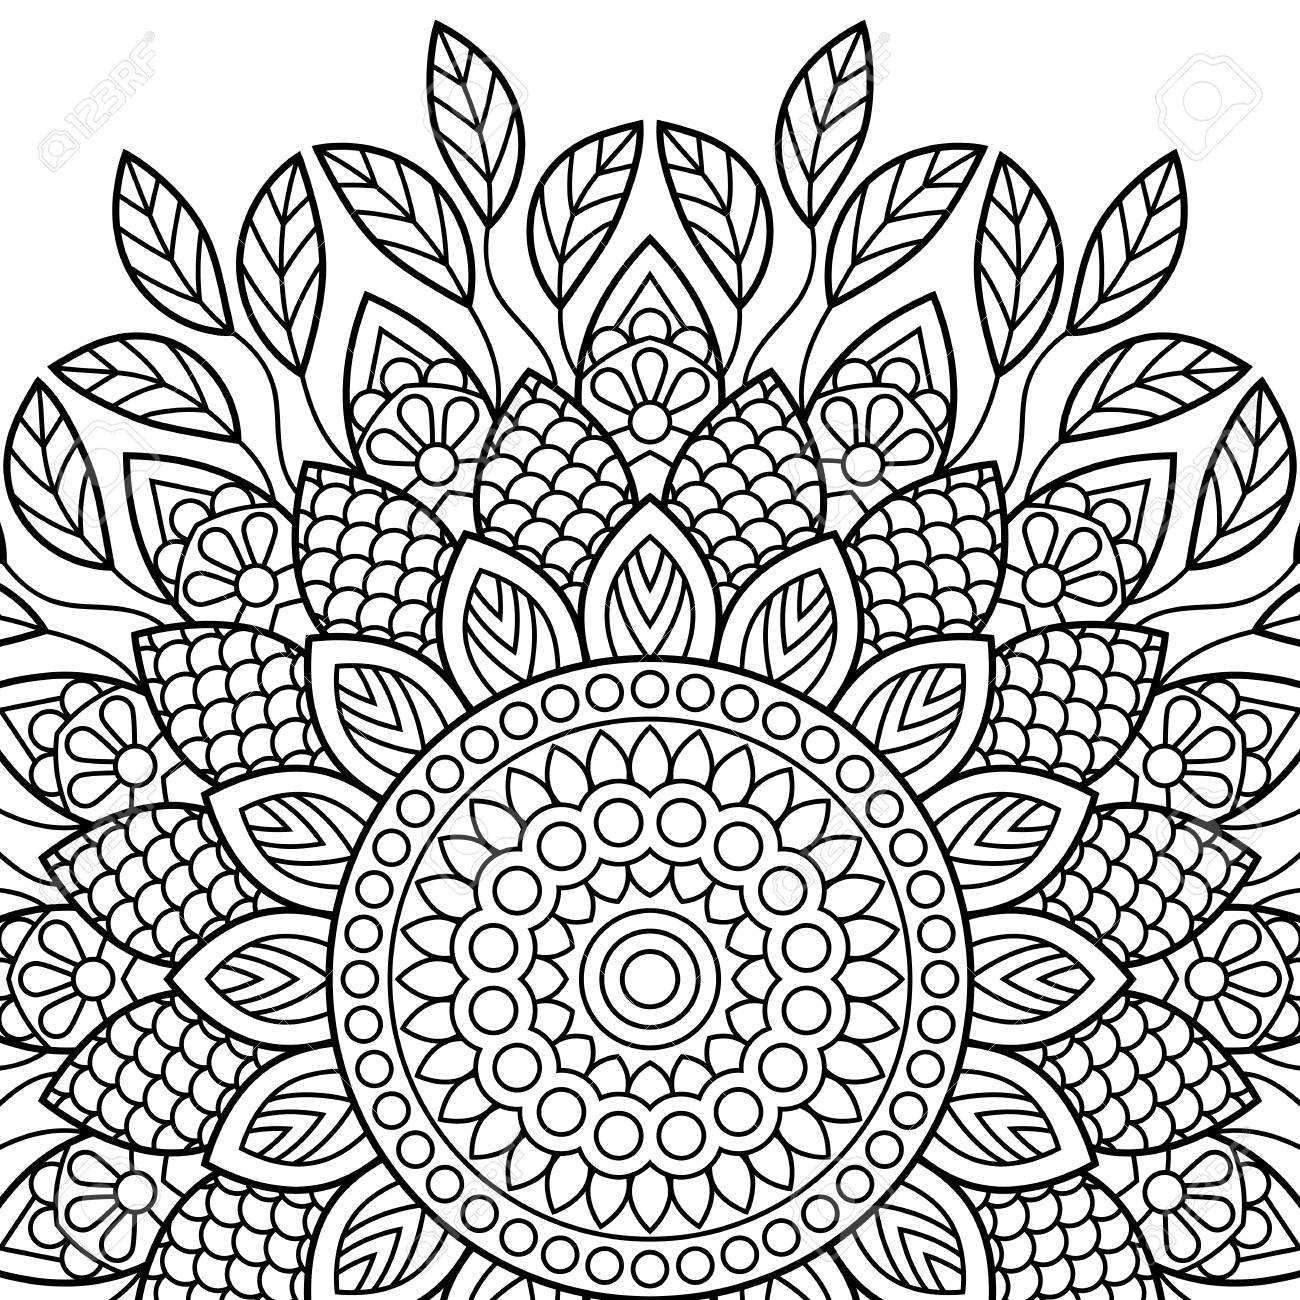 Coloring Book Pages Mandala Indian Antistress Medallion Abstract